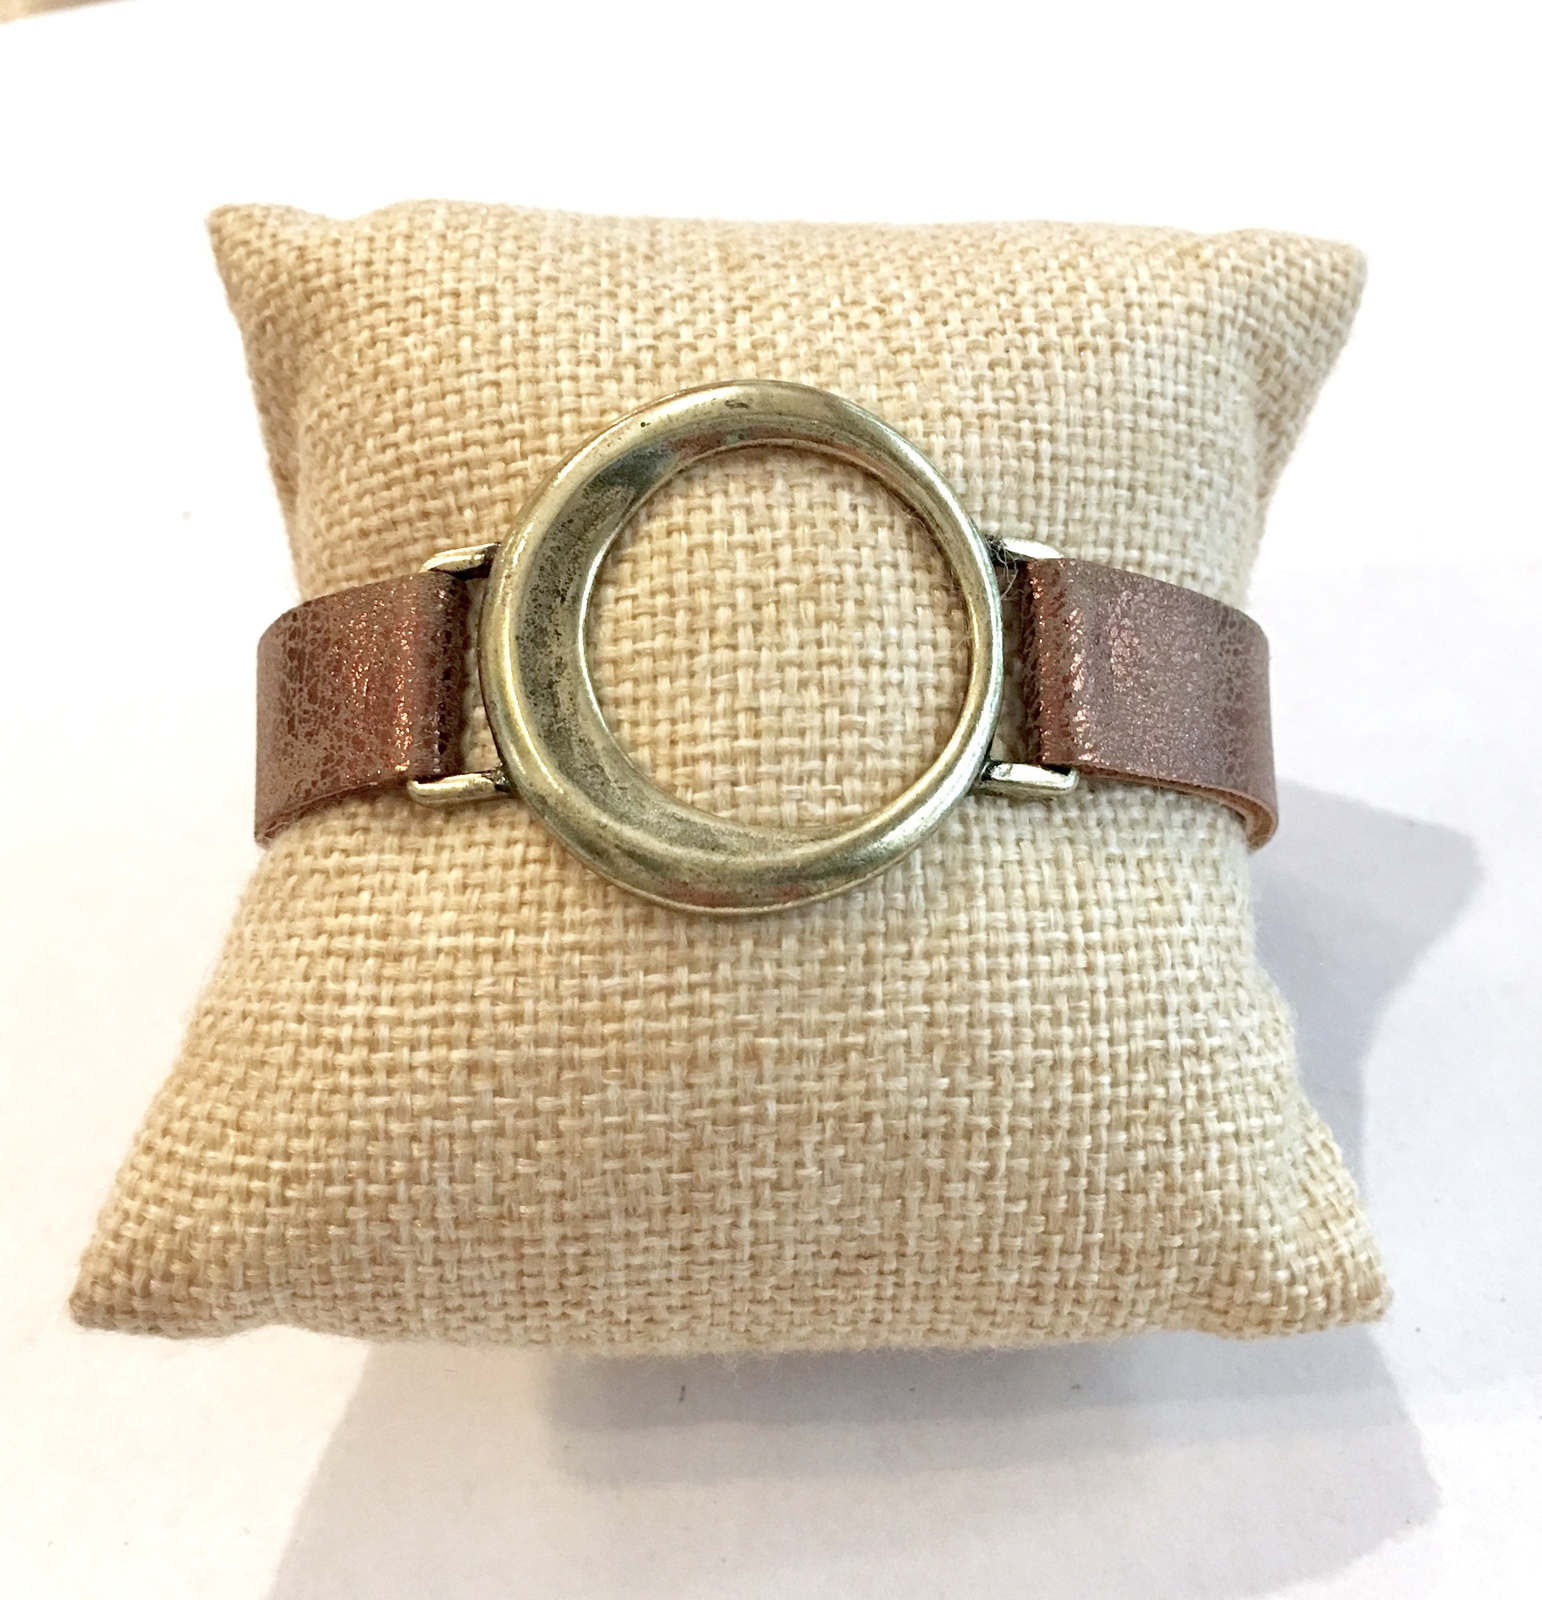 Faux Leather Bracelet, Brown Leather Bracelet with Gold Ring